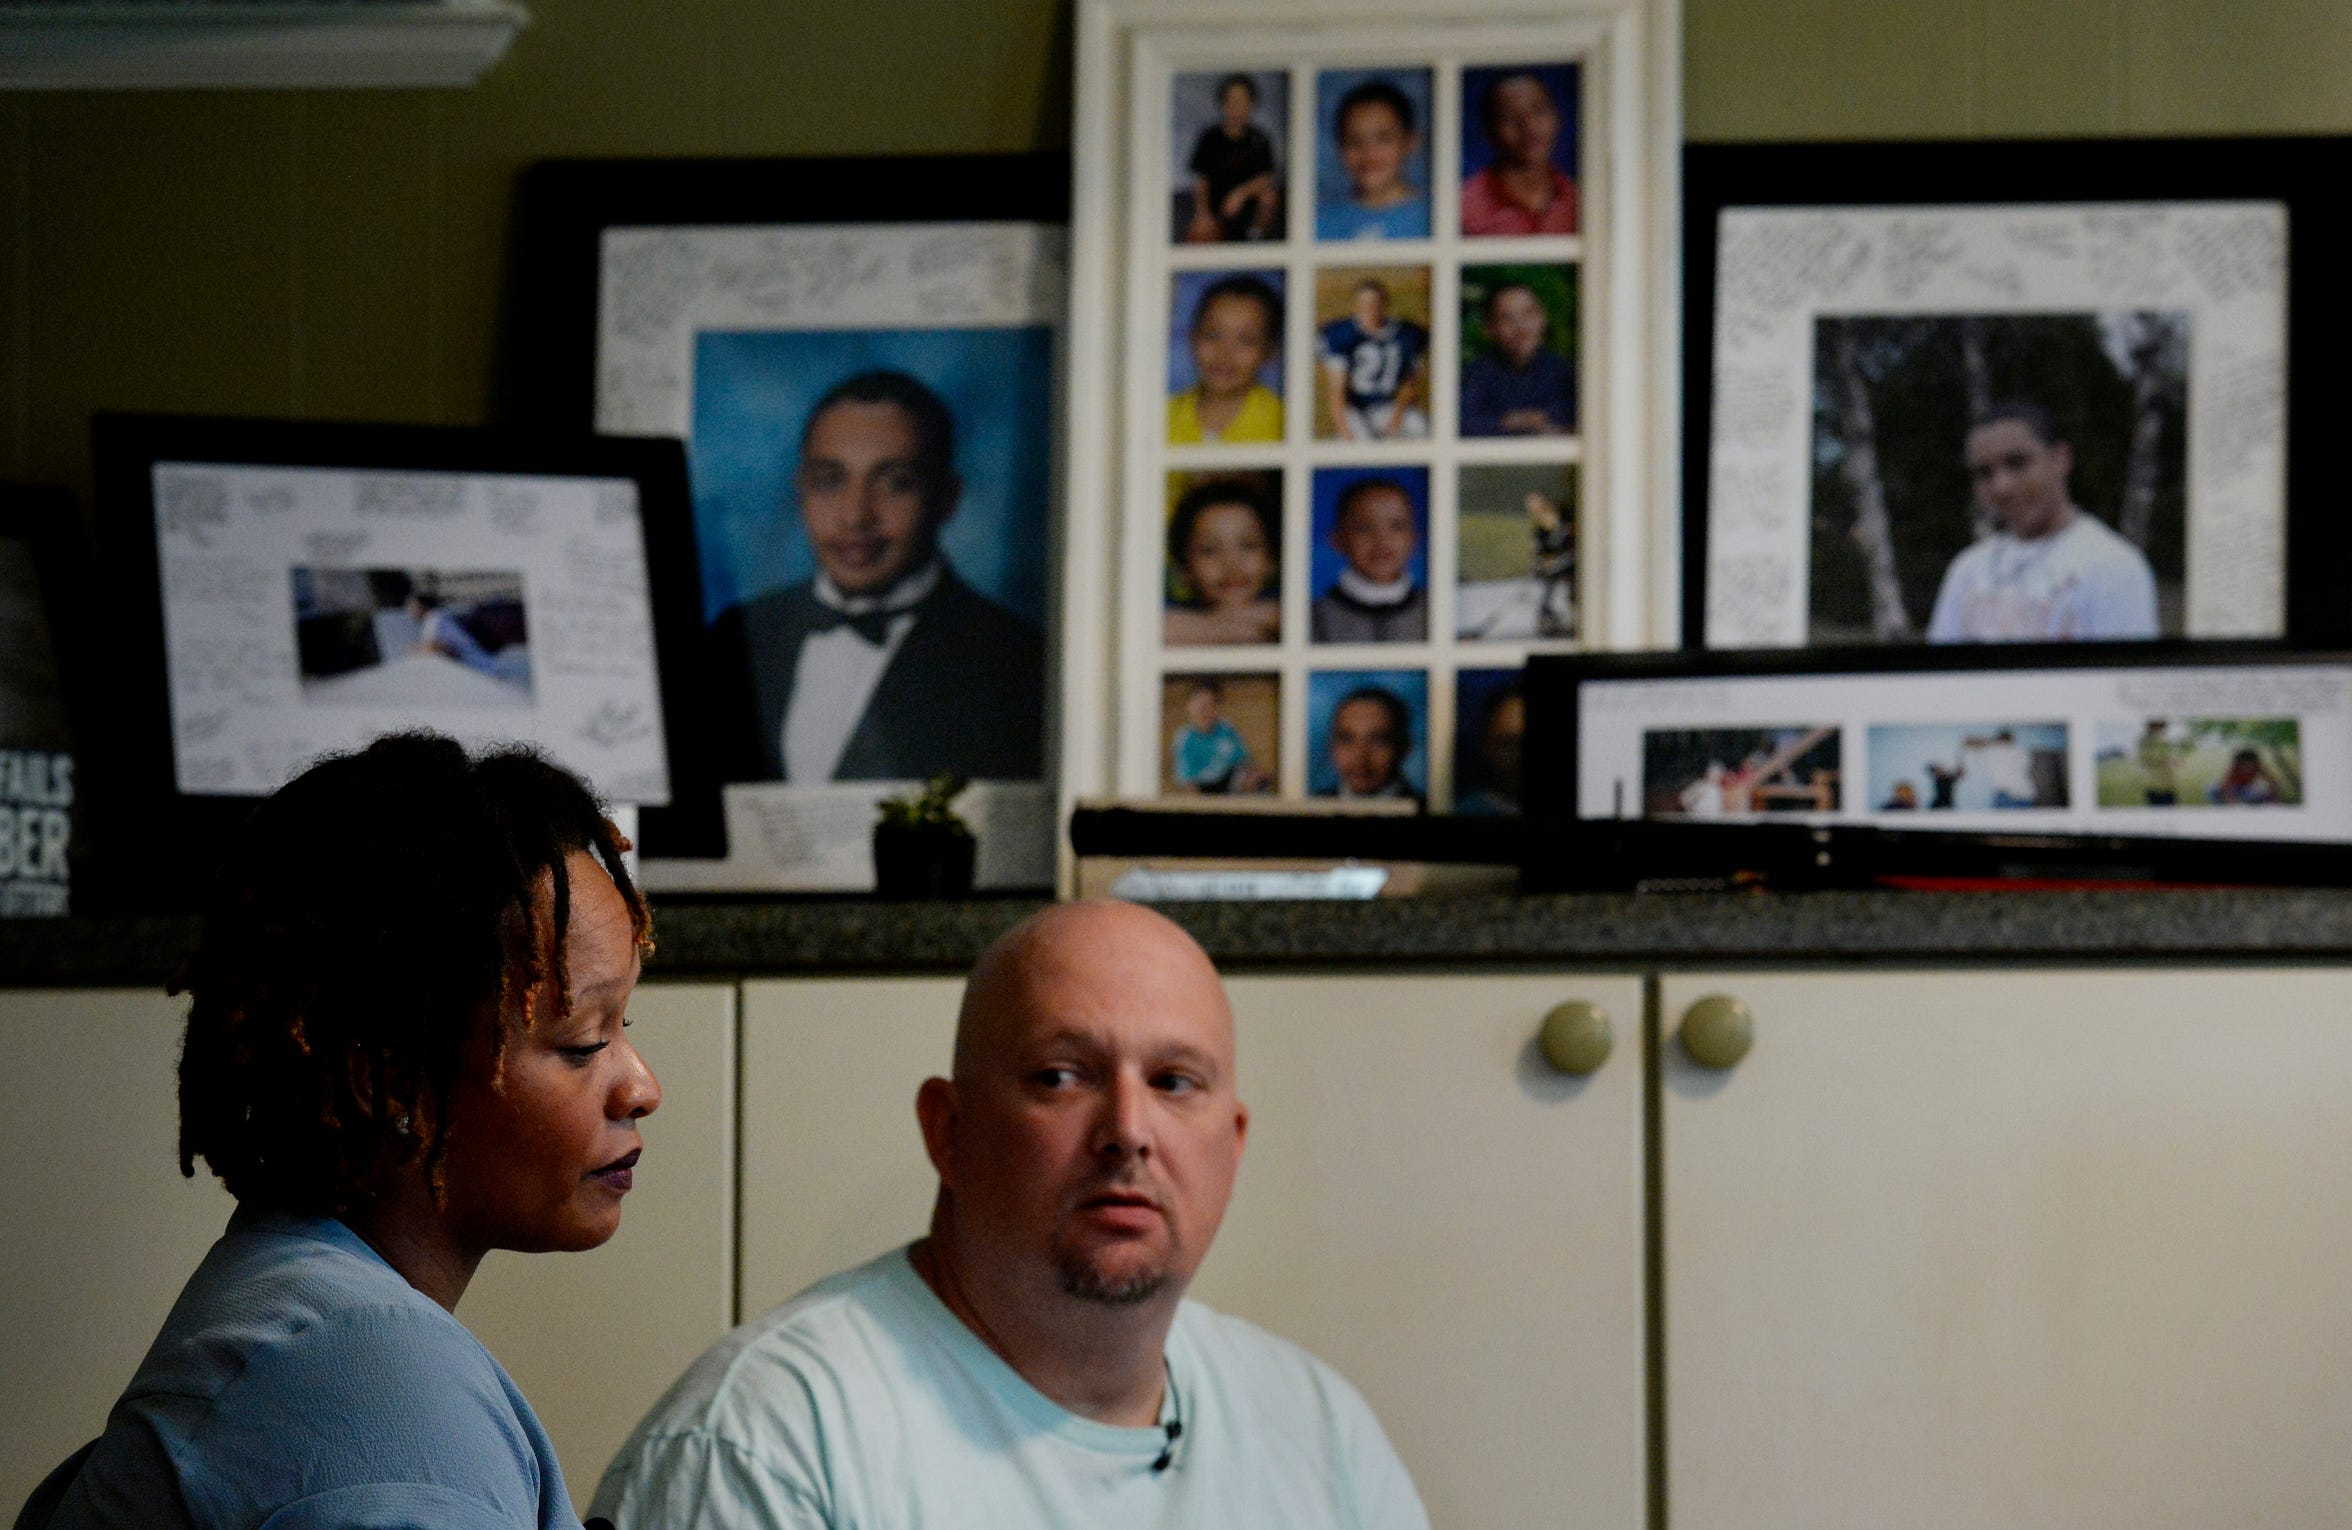 """Rachel and Michael Blado talk about their son, Josh Holton, who died in 2016 of a fentanyl overdose after buying what he thought was Xanax online. """"I think Josh was self-medicating but not explaining to his friends what was really going on,"""" Rachel Blado said. """"He was inexperienced, and he found something he didn't know was dangerous. And it killed him."""""""